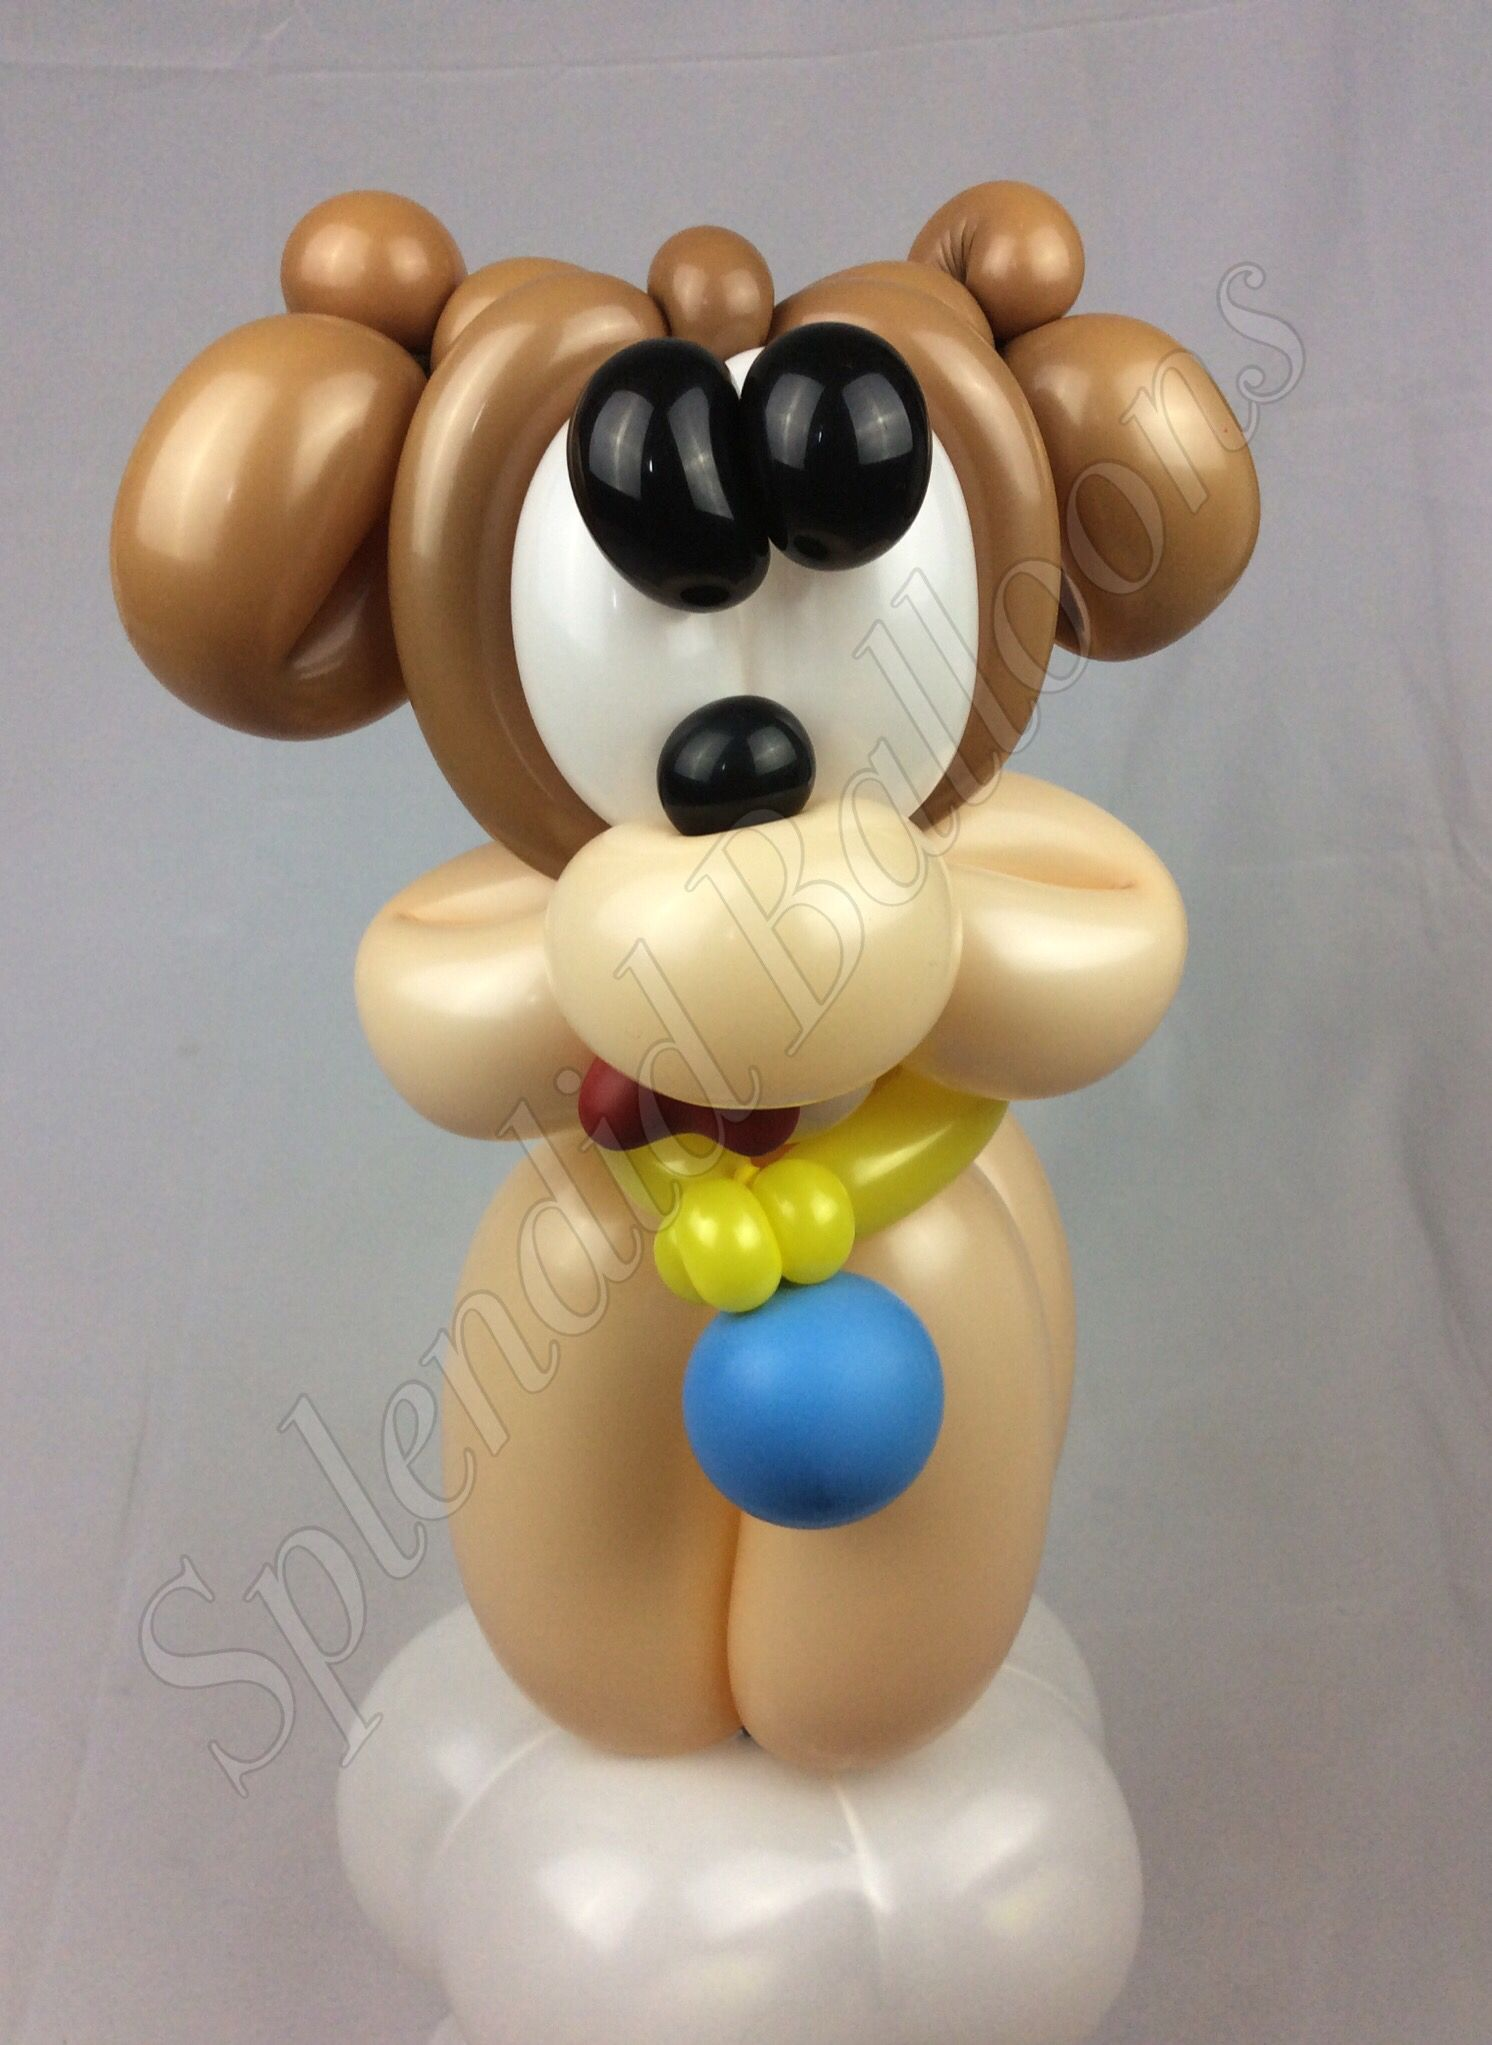 Puppy, doggie, dog, pup, cute, adorable, fun, Boys, and , Girls, Party Ideas, WOW, California, Funny, Cool, Amazing, Balloons, Party, Kids, Splendid, balloons, Art, Awesome, centerpieces, Balloon Twisting